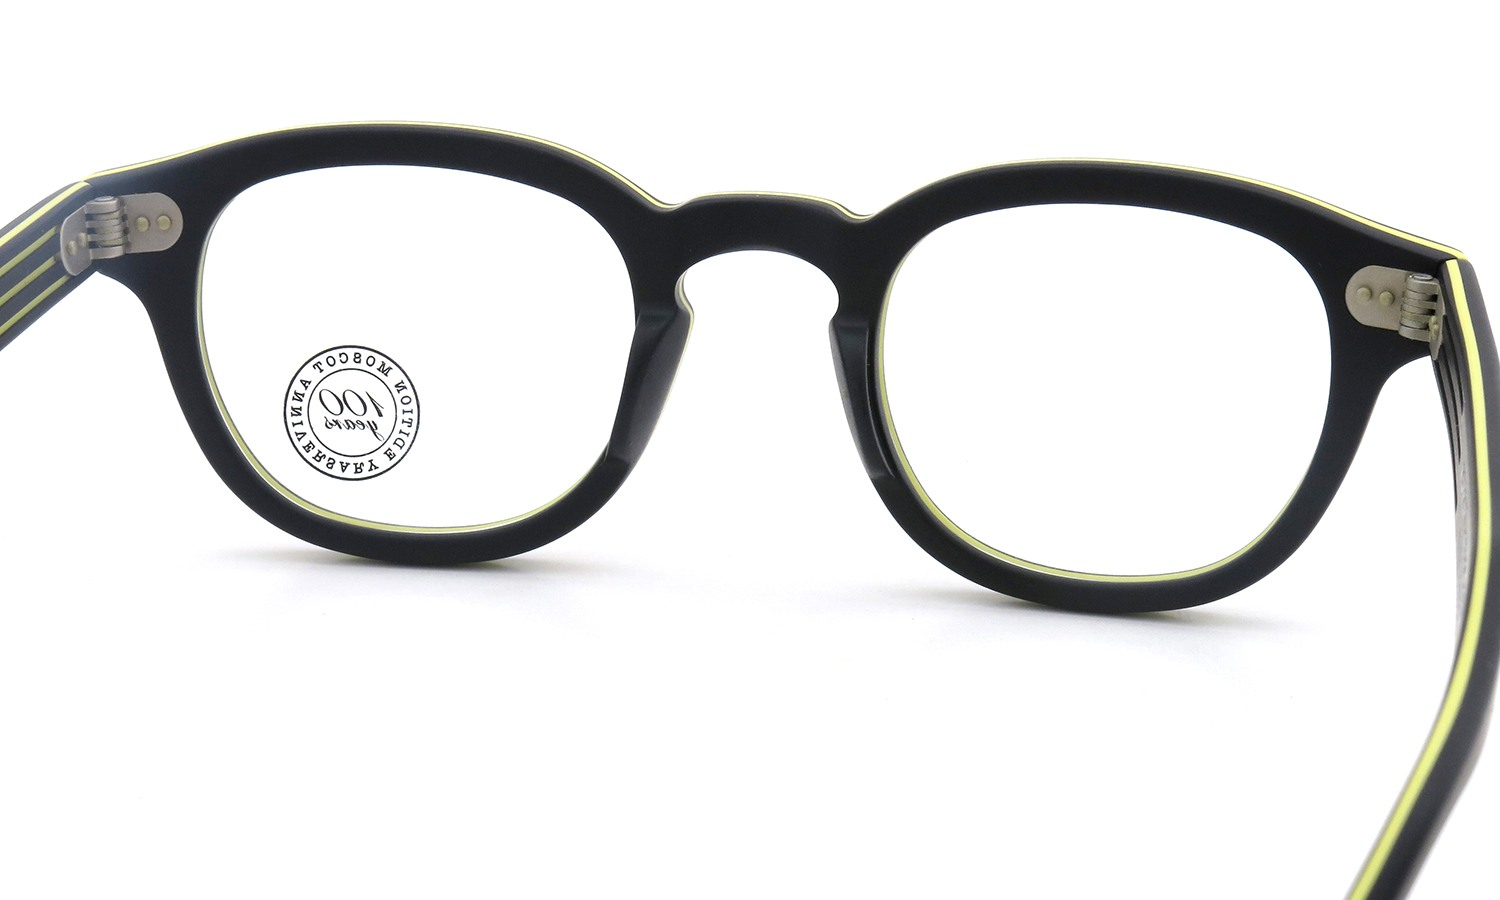 MOSCOT ORIGINALS 100YEARS  LEMTOSH-smart 46size